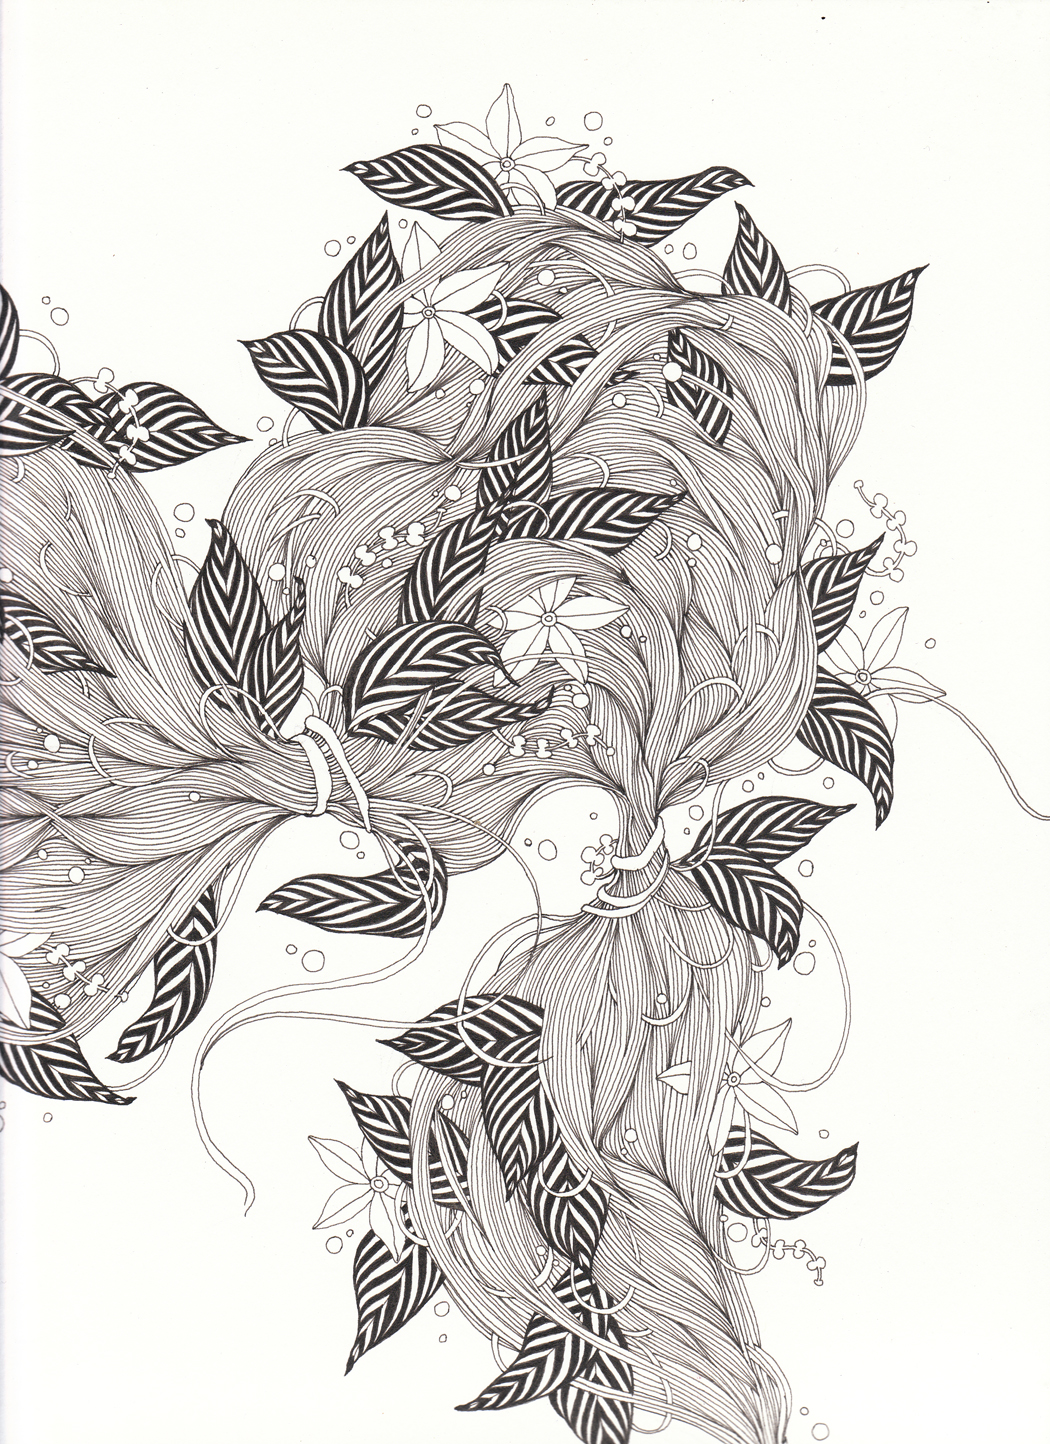 """Hair I, 9"""" X 12"""", ink on paper, 2011 SOLD"""